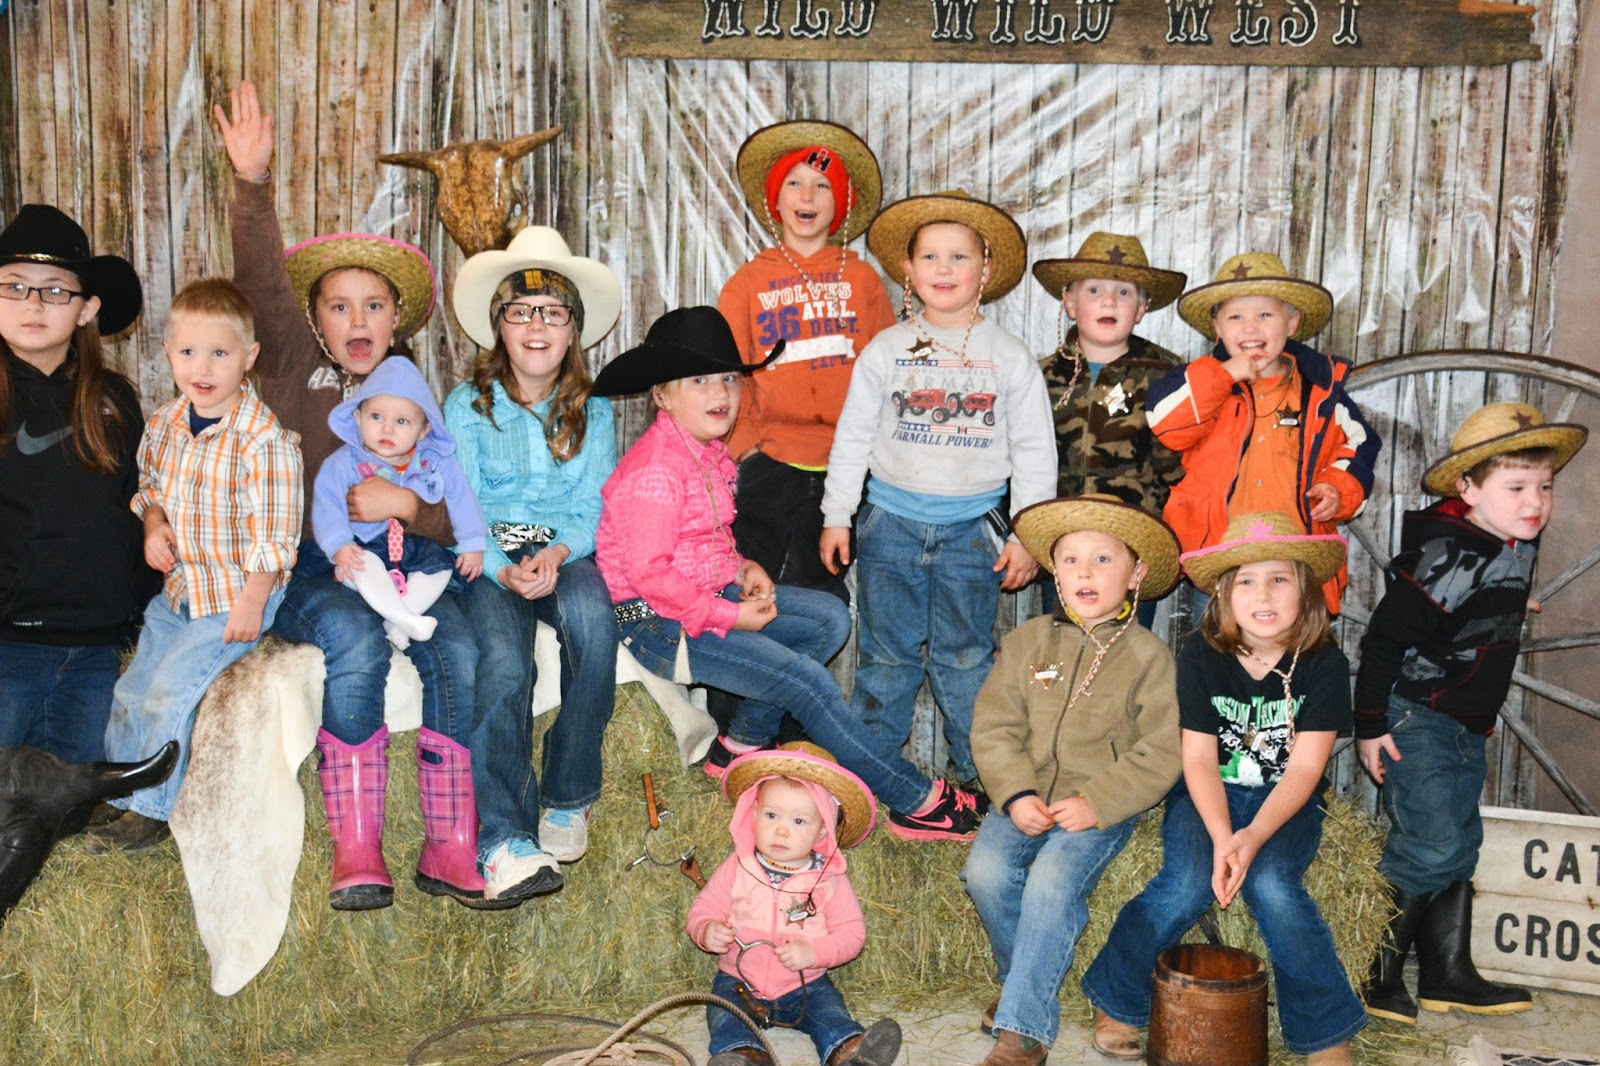 Before We Played Games Got All Of The Kids Together For A Picture Willing Ones Anyway Dont They Look Great In Their Hats And Badges